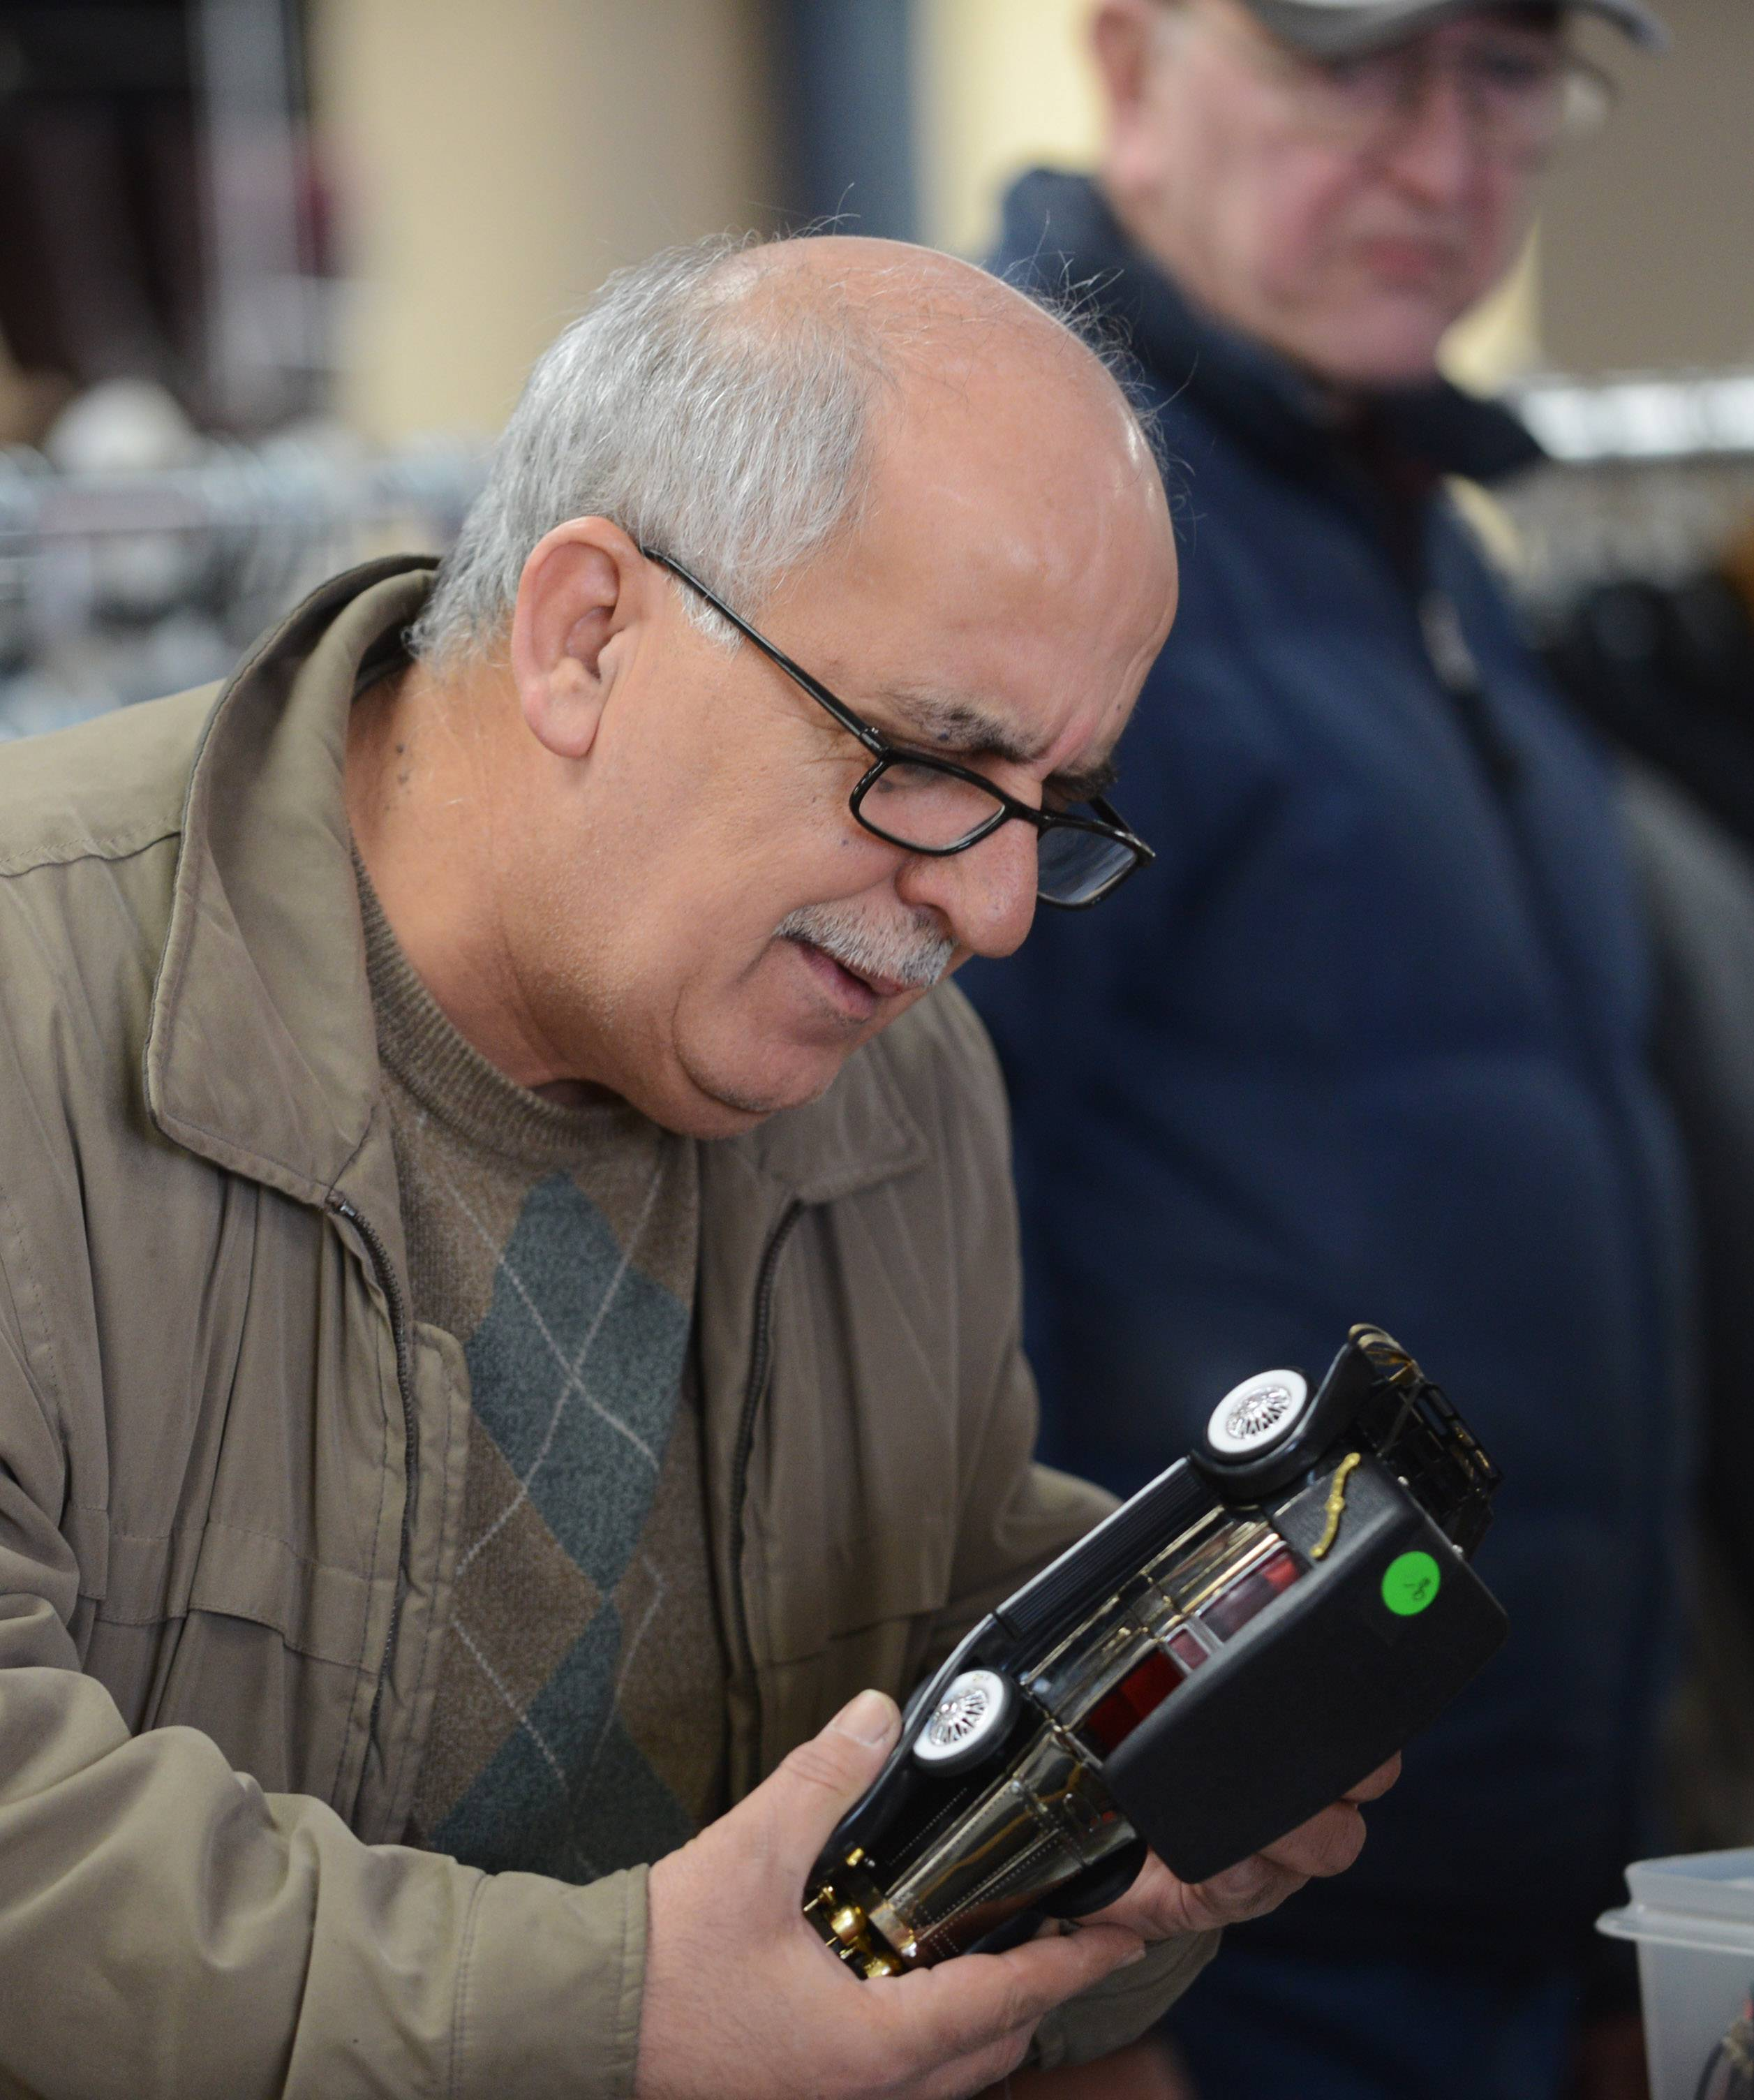 Emmanuel Malik of Schaumburg views a model car while shopping during the grand reopening of Shelter, Inc.'s Schaumburg thrift shop Saturday.